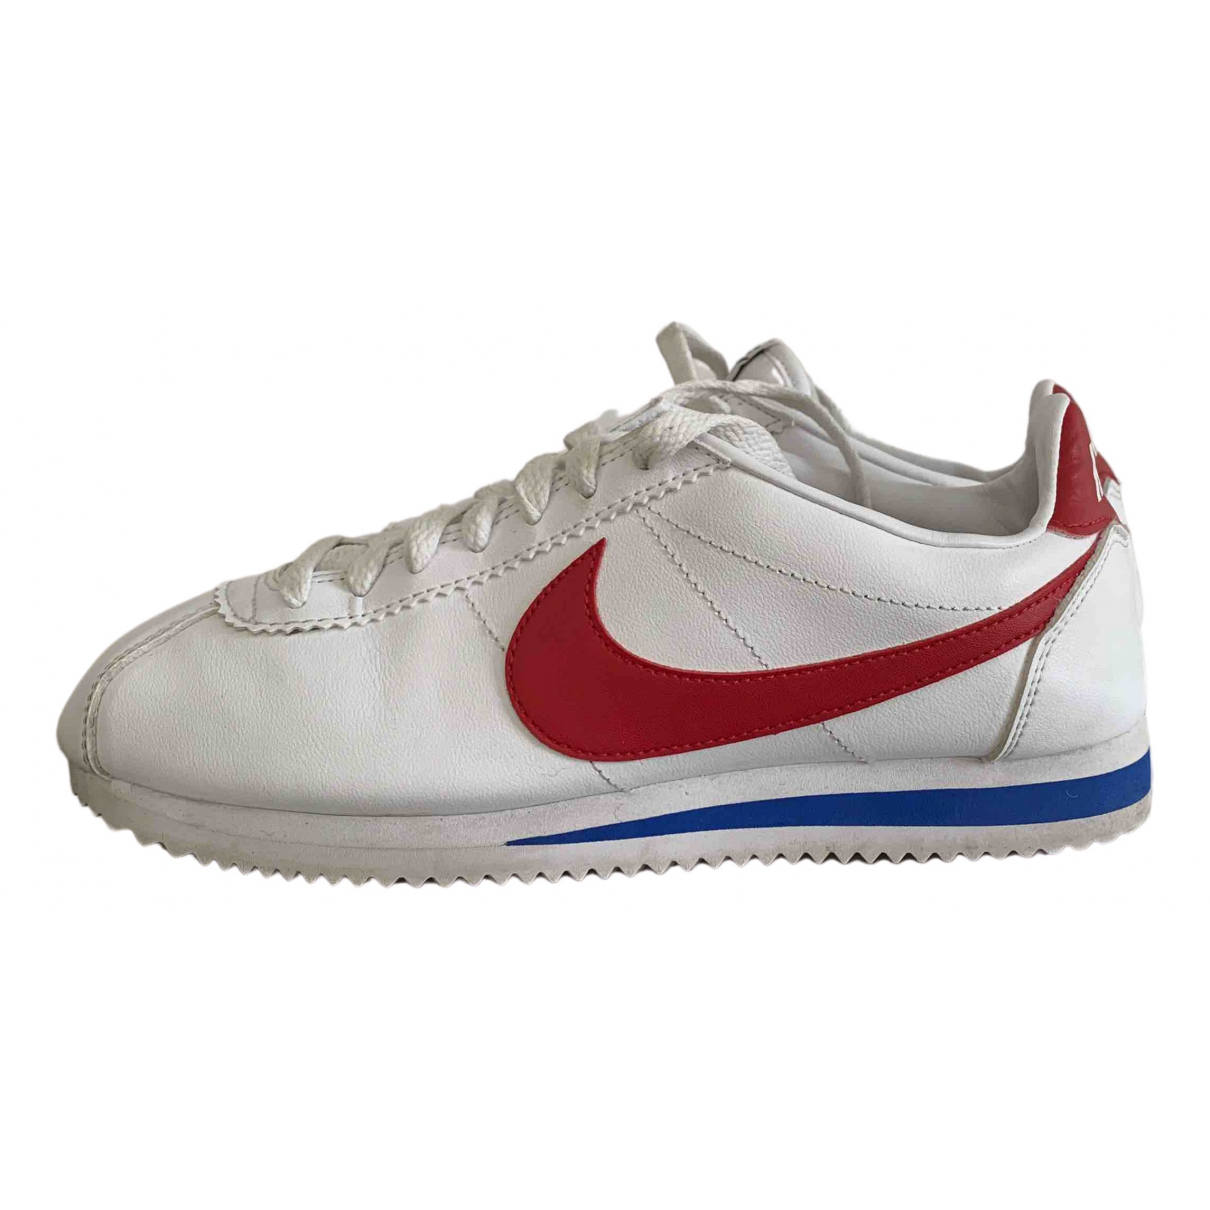 Nike Cortez White Leather Trainers for Women 5 UK